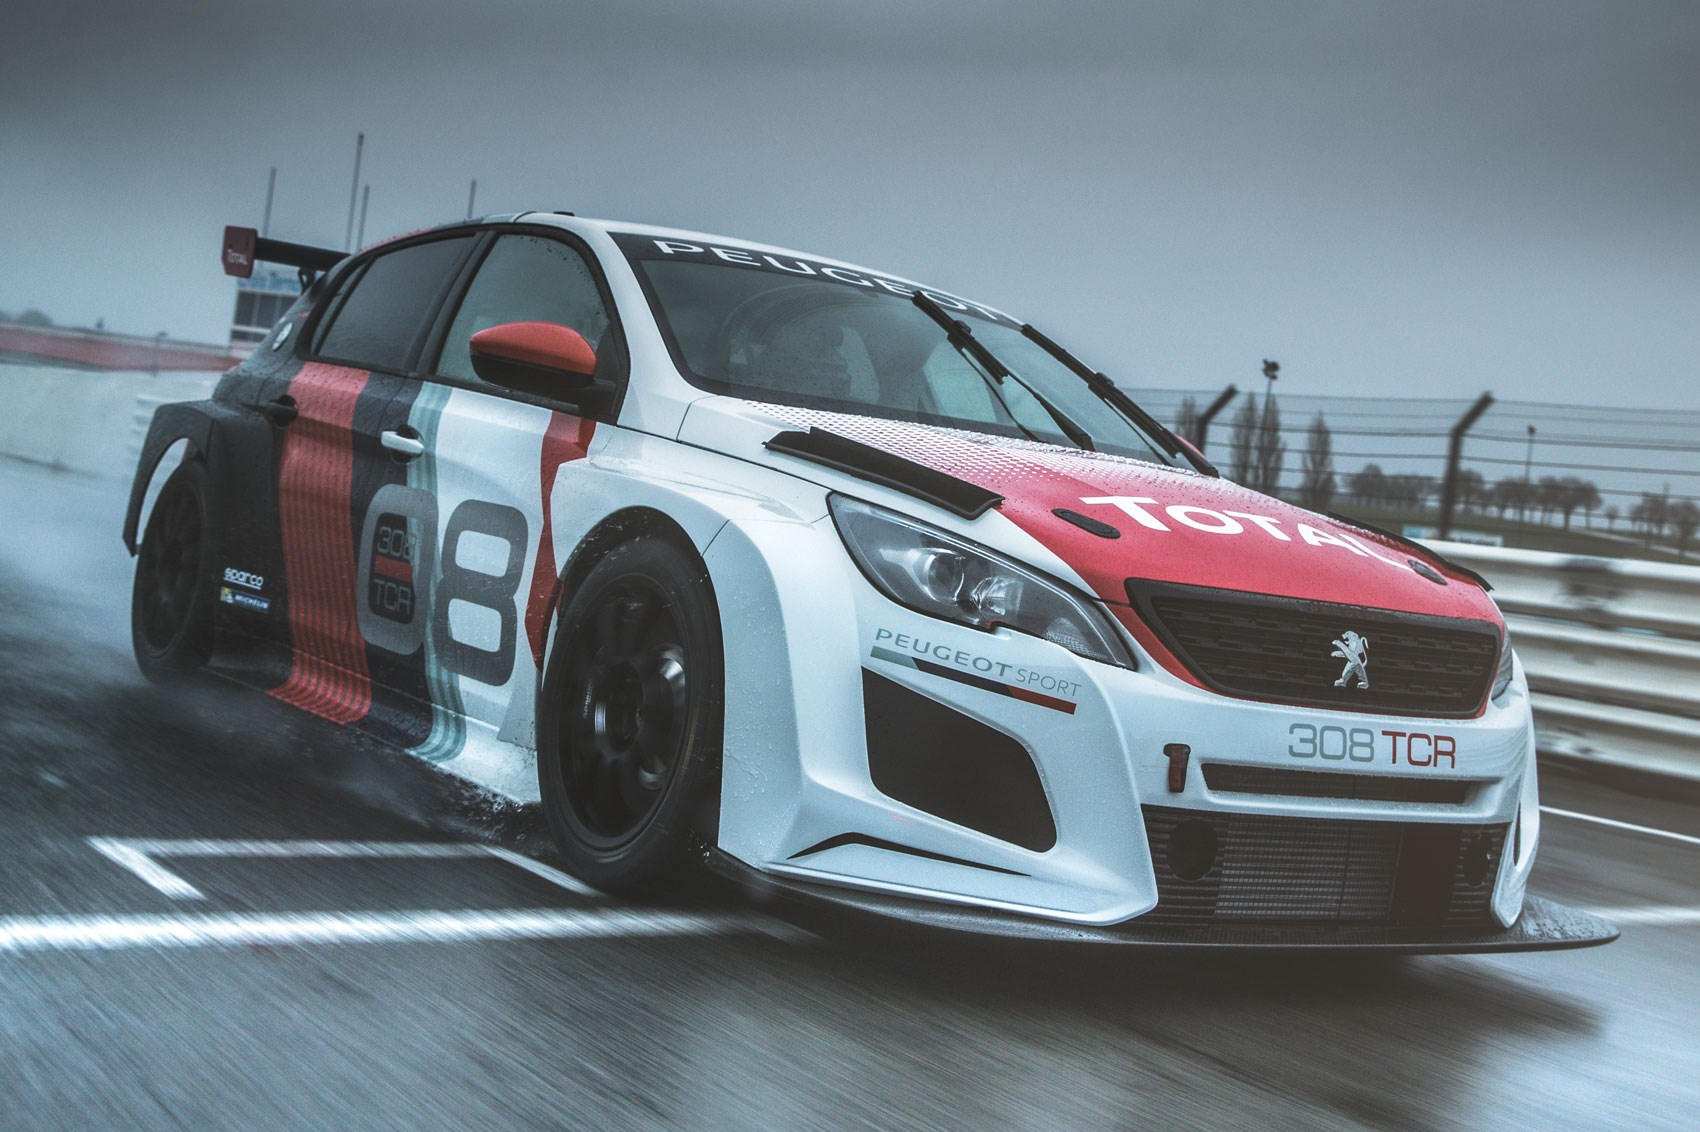 Peugeot 308TCR 2018 Race Car: Pics, Specs And Price